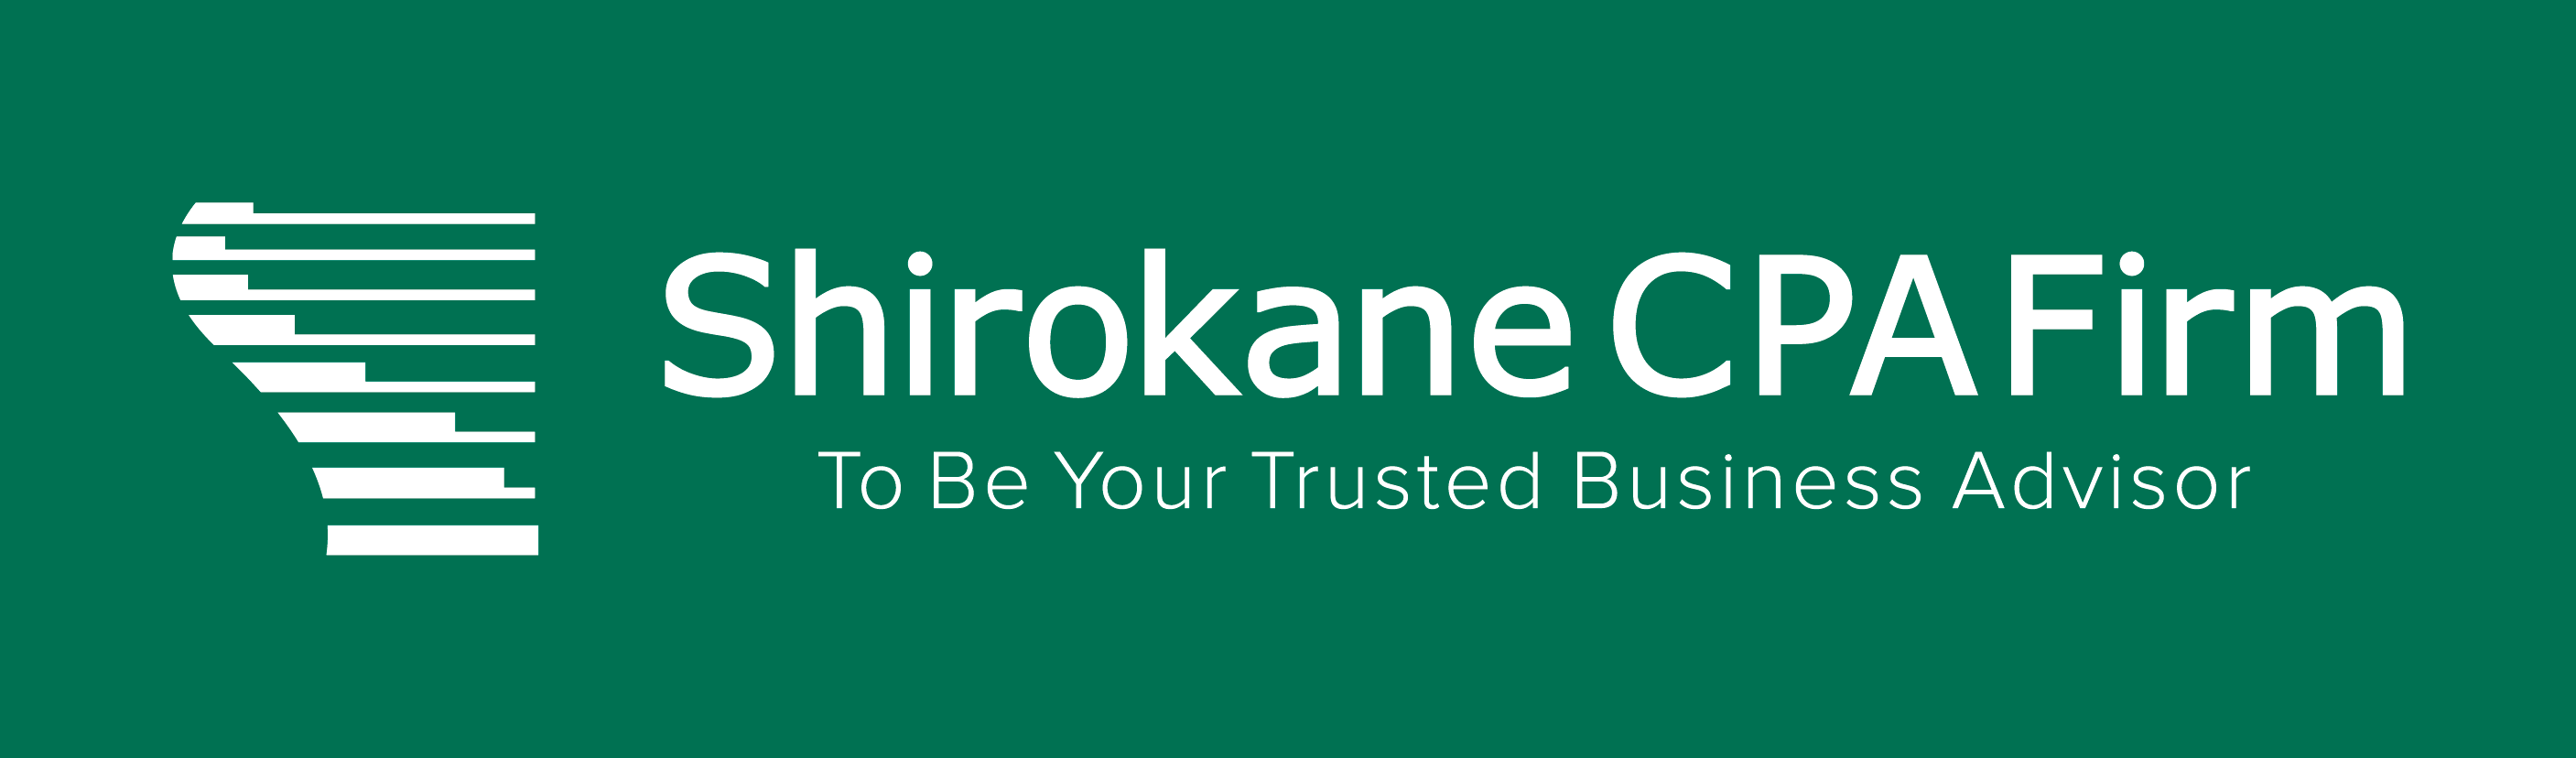 Free Handouts about Japan Business - Shirokane CPA Firm